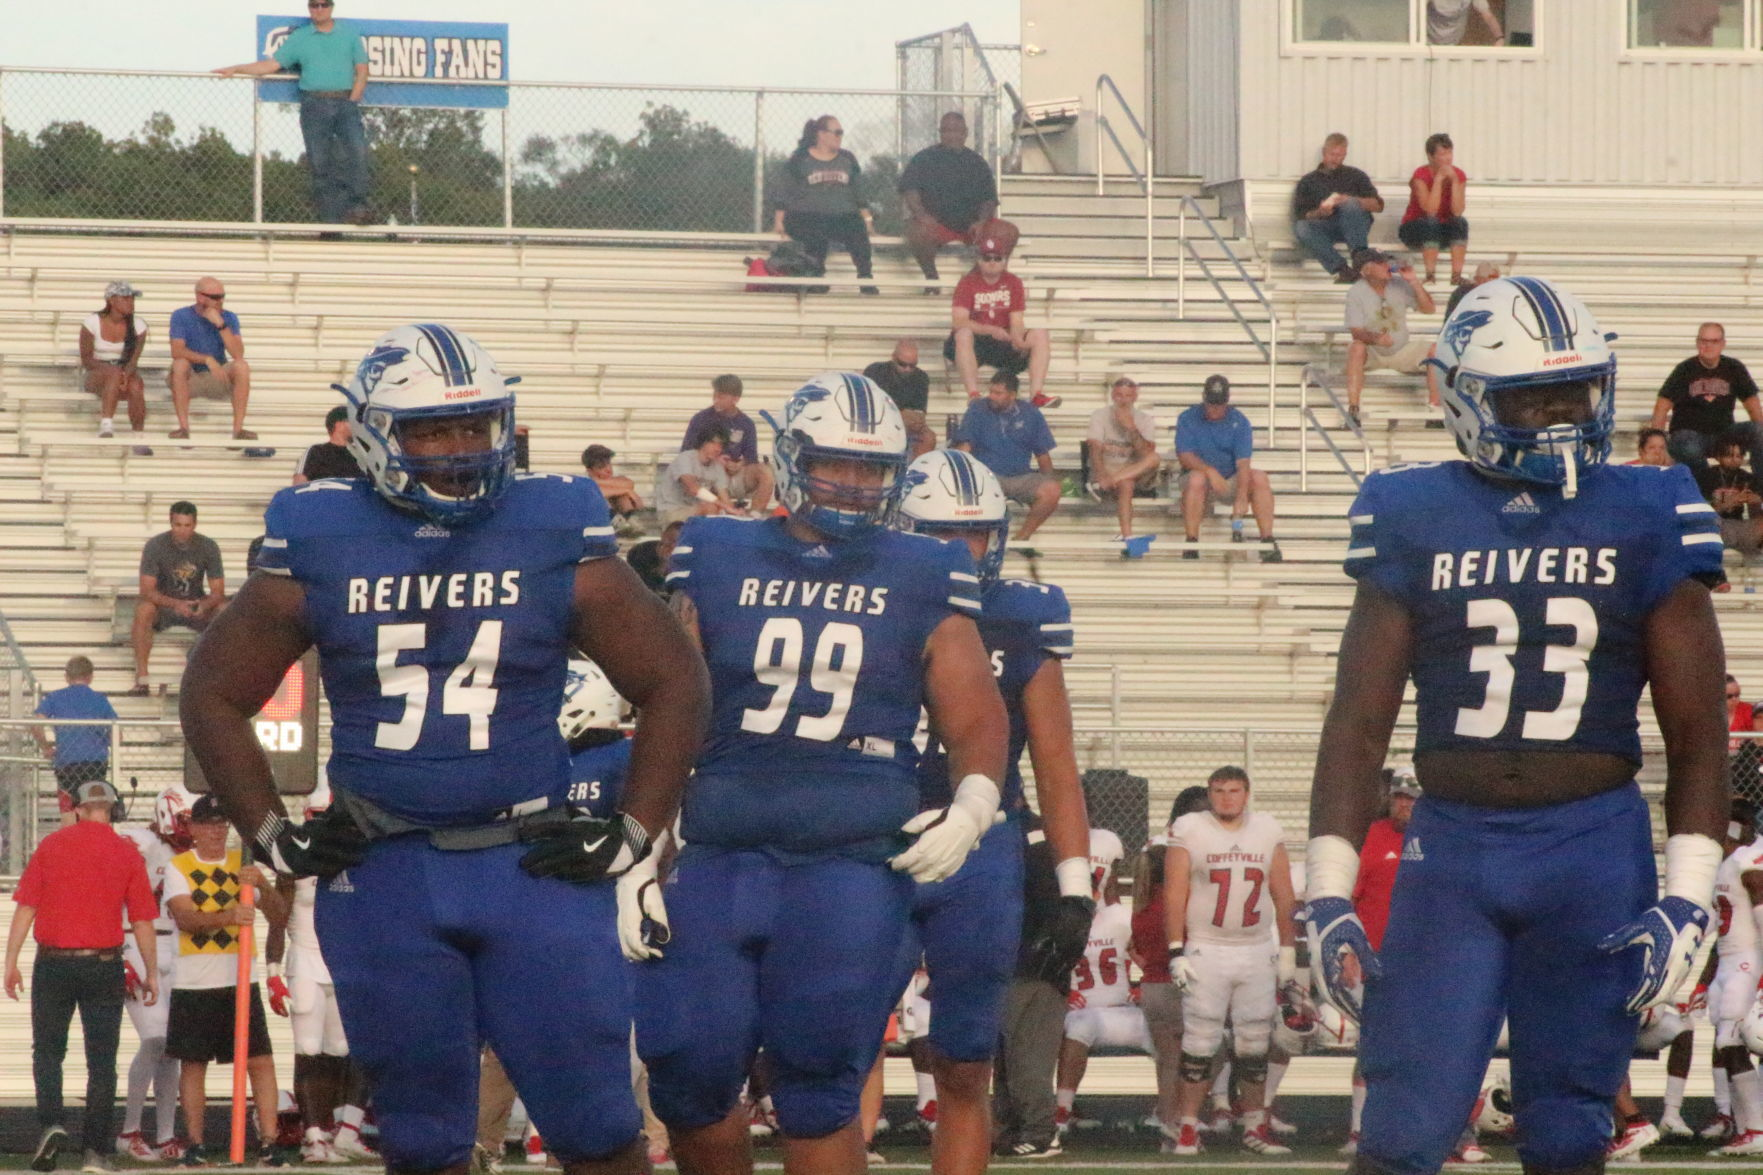 COMPLETE 2018 JUCO COLLEGE IOWA WESTERN REIVERS TEAM SET